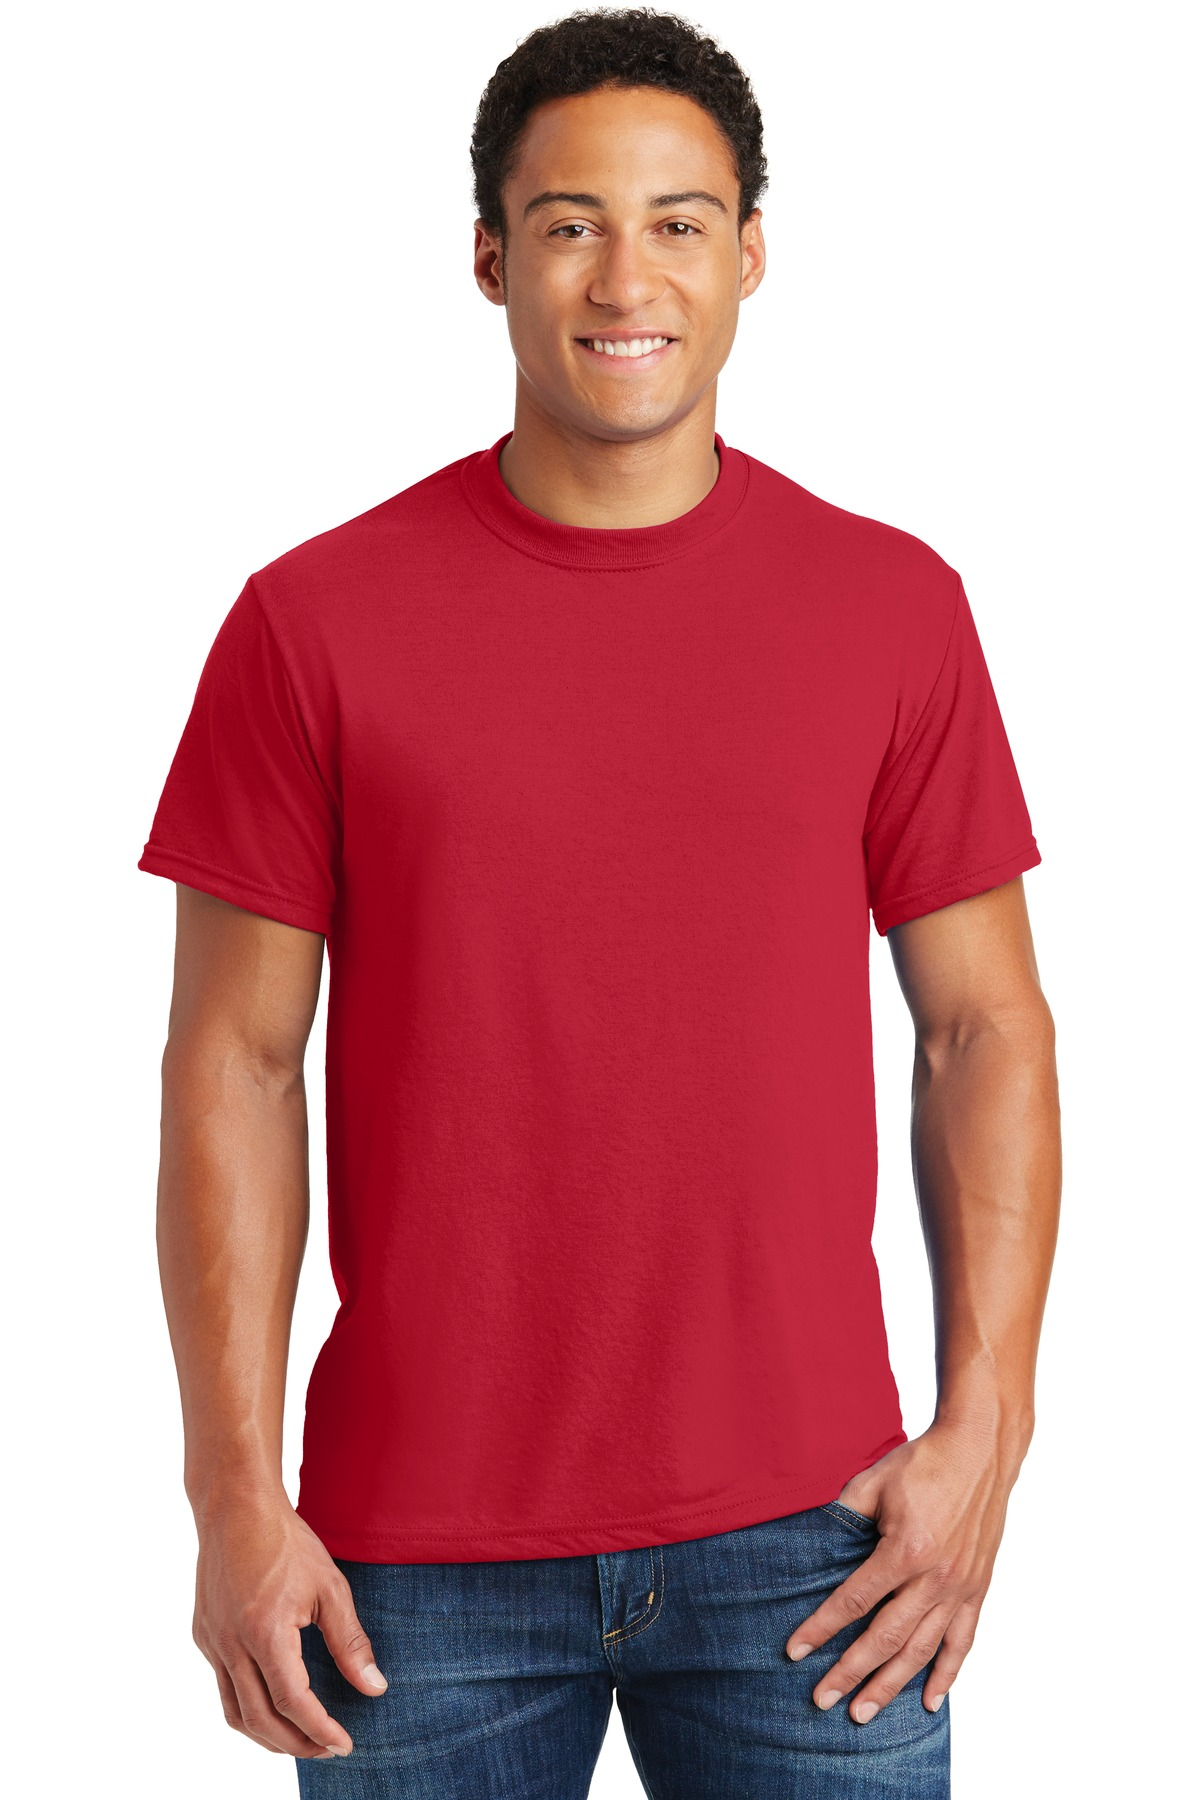 JERZEES ®  Dri-Power ®  Sport 100% Polyester T-Shirt. 21M - True Red